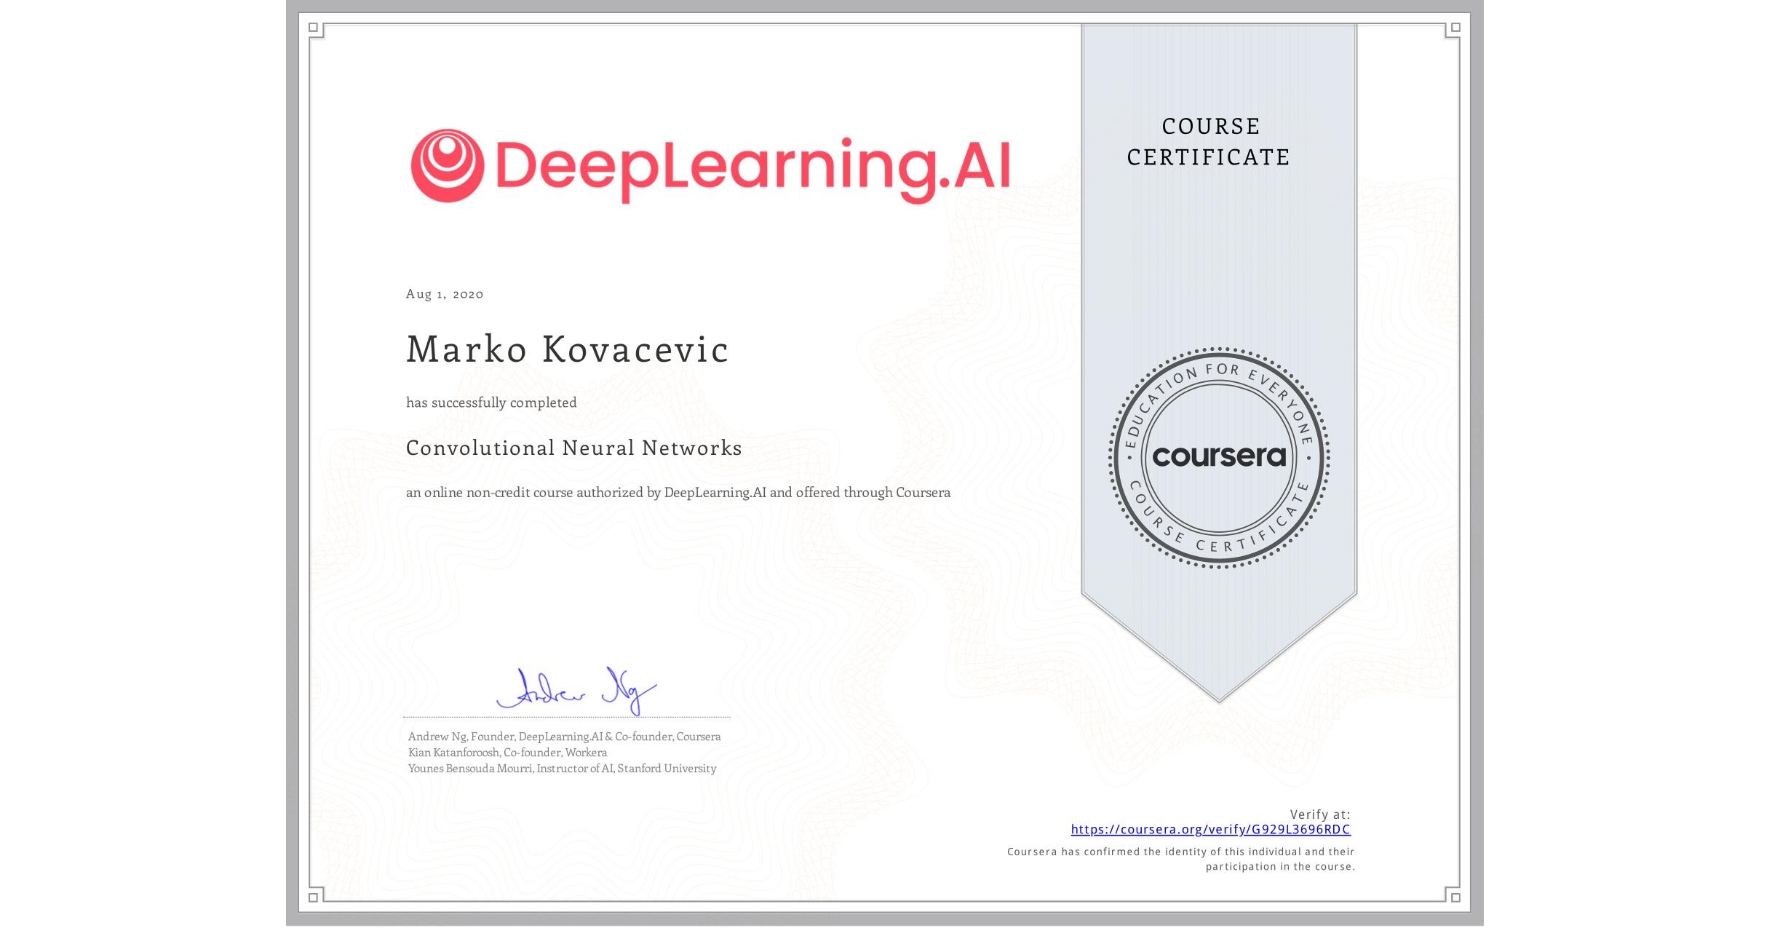 View certificate for Marko Kovacevic, Convolutional Neural Networks, an online non-credit course authorized by DeepLearning.AI and offered through Coursera